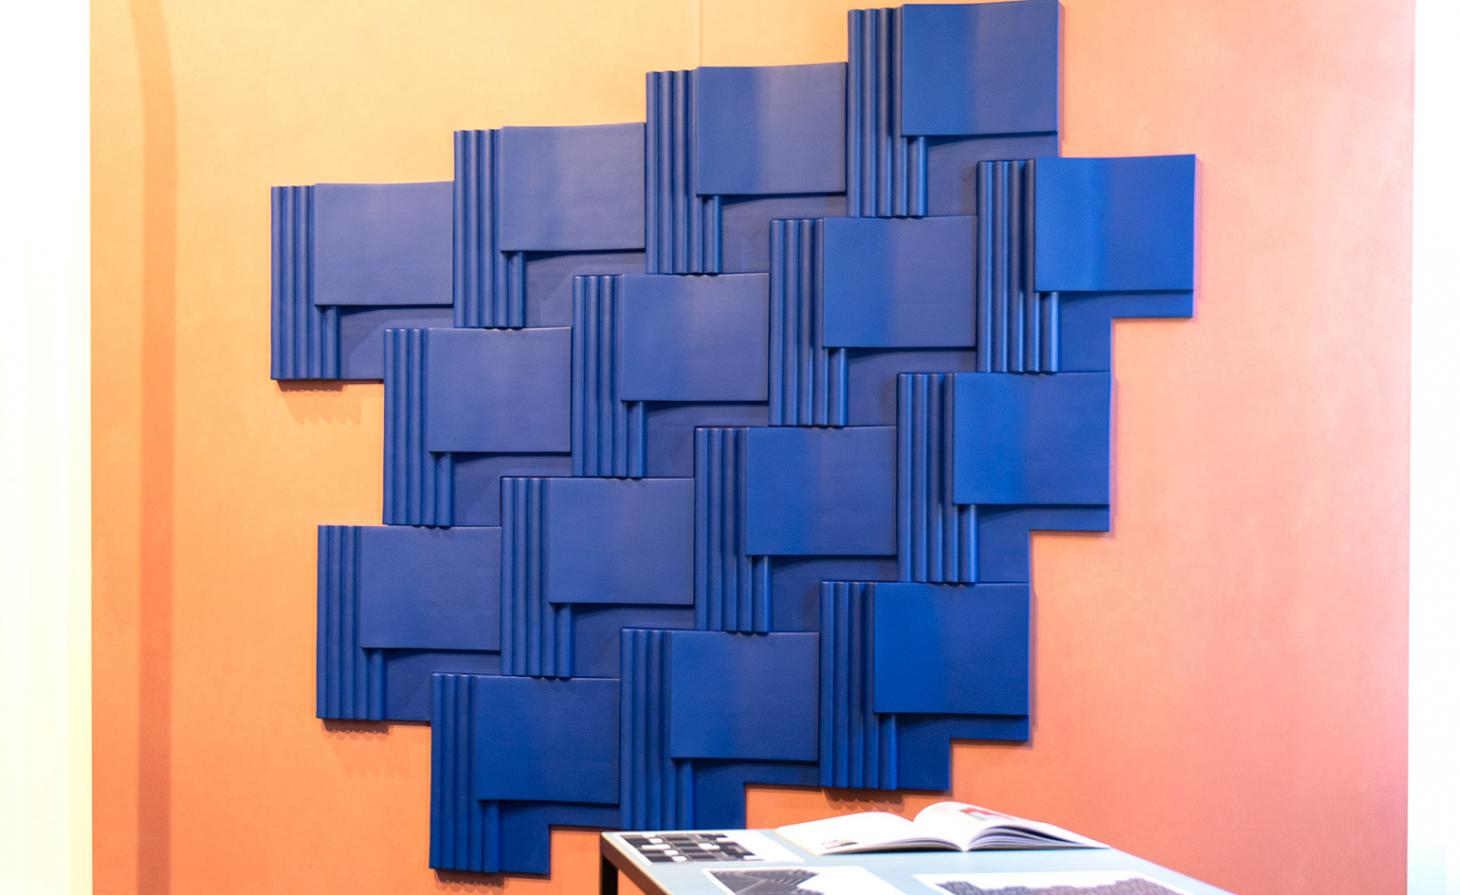 cedit panels by Studio Zaven on show in Venice